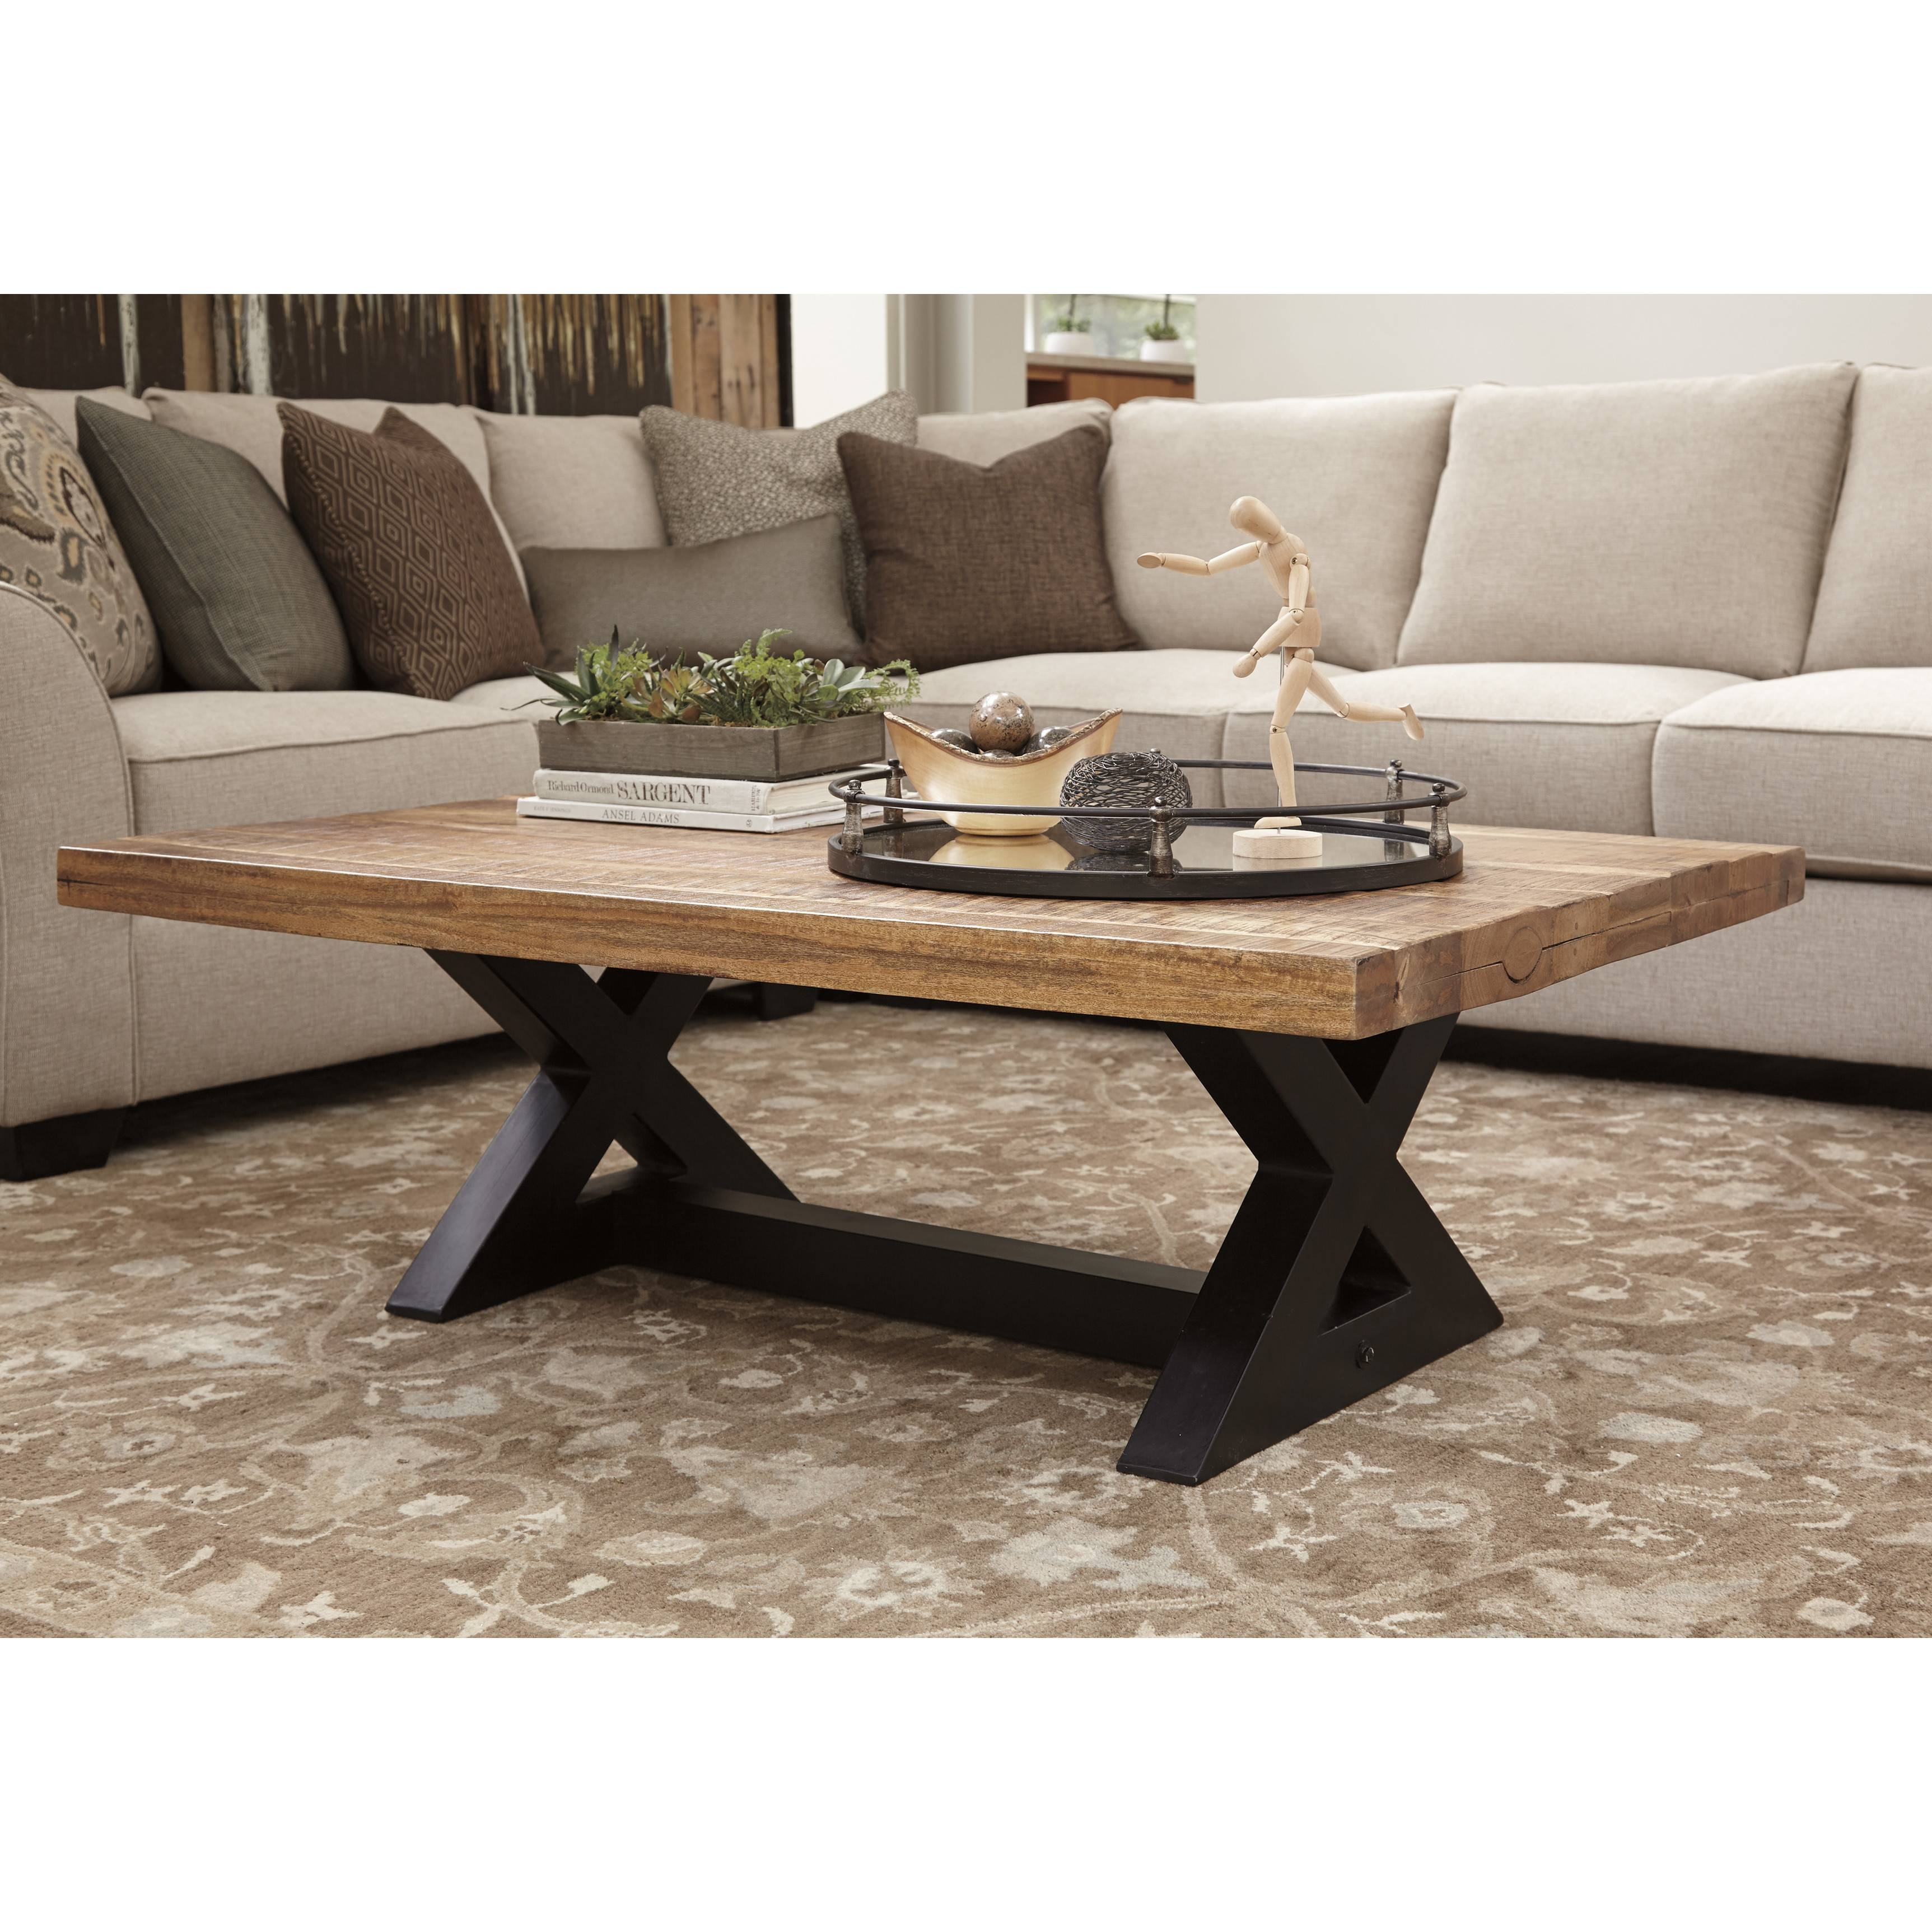 30 Best Collection of Beige Coffee Tables